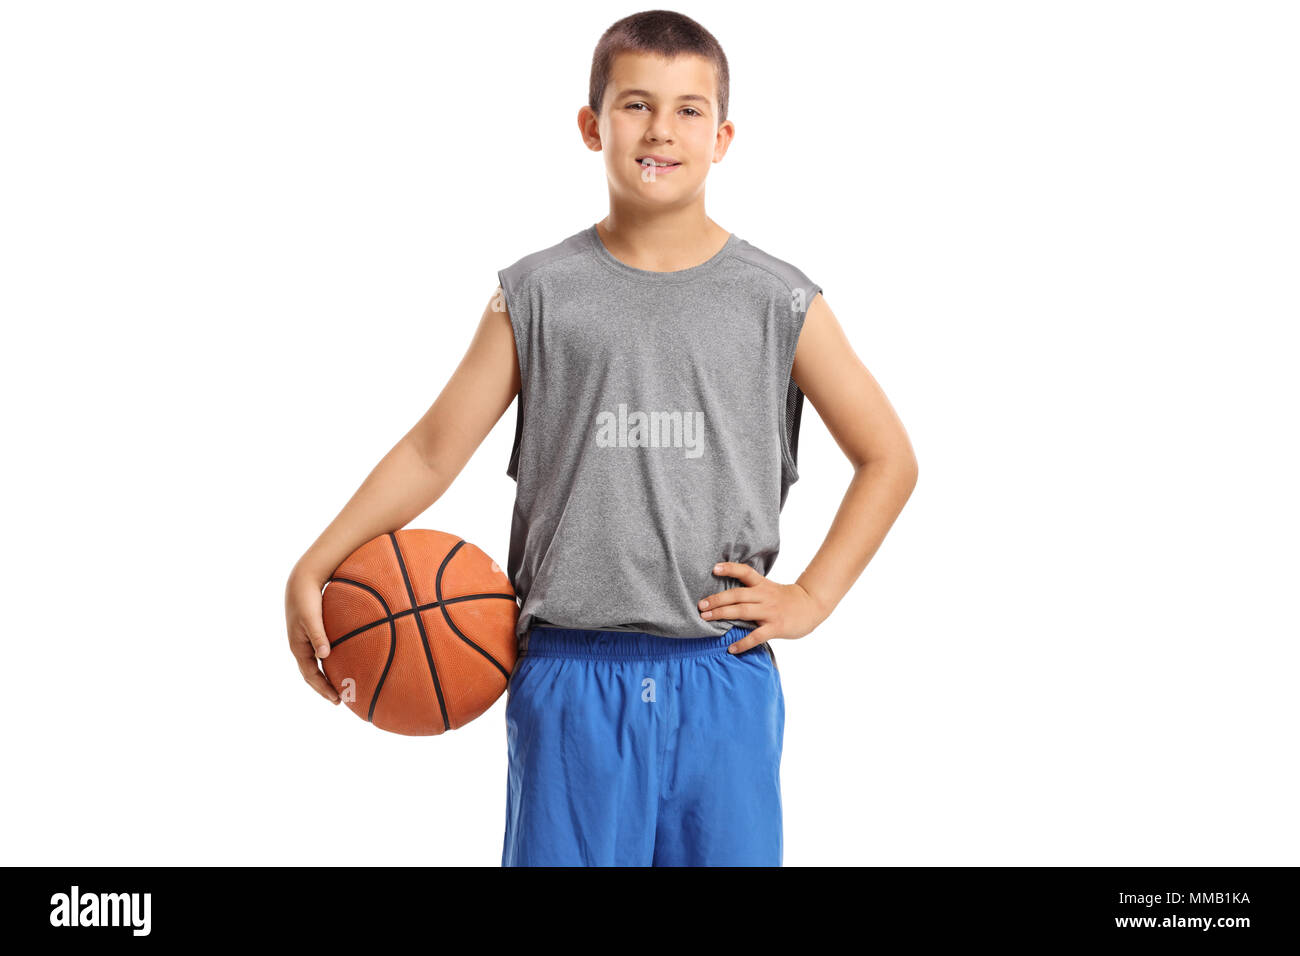 Boy with a basketball isolated on white background - Stock Image